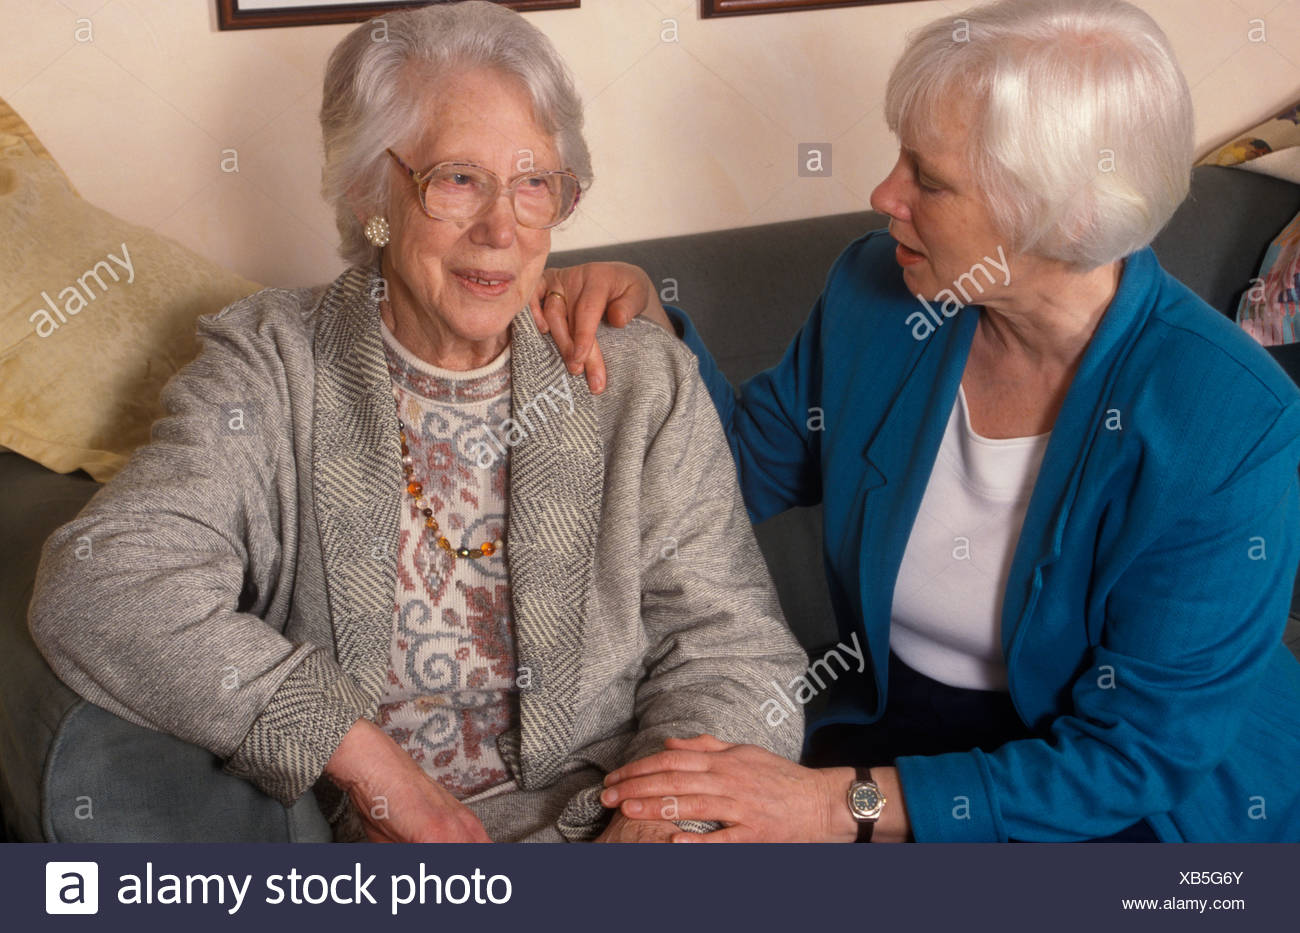 elderly woman being comforted by a daughter or relative - Stock Image